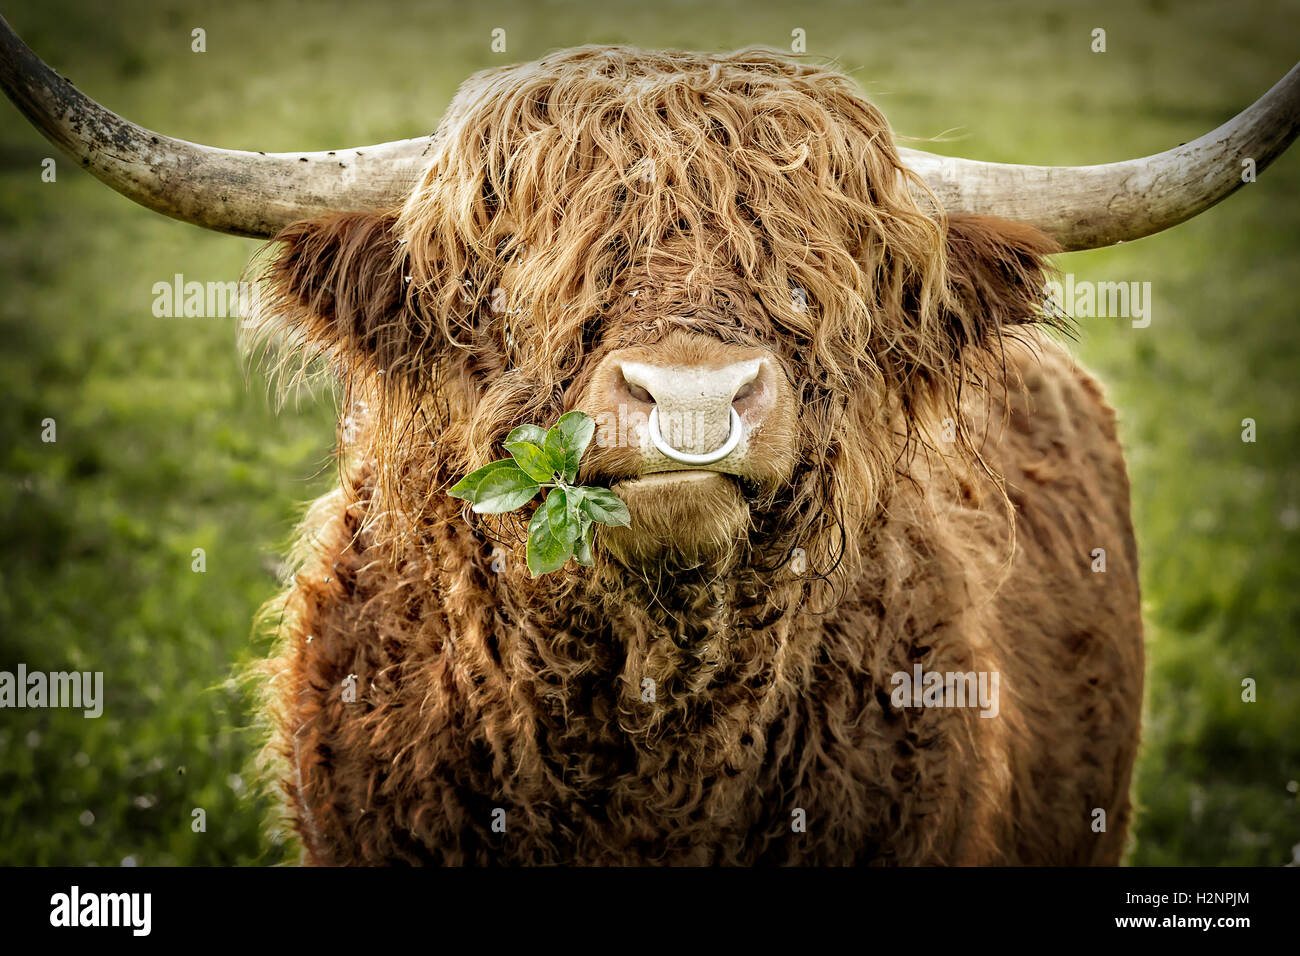 Close up of leaves chewing highland cattle bull with iron nose ring. - Stock Image